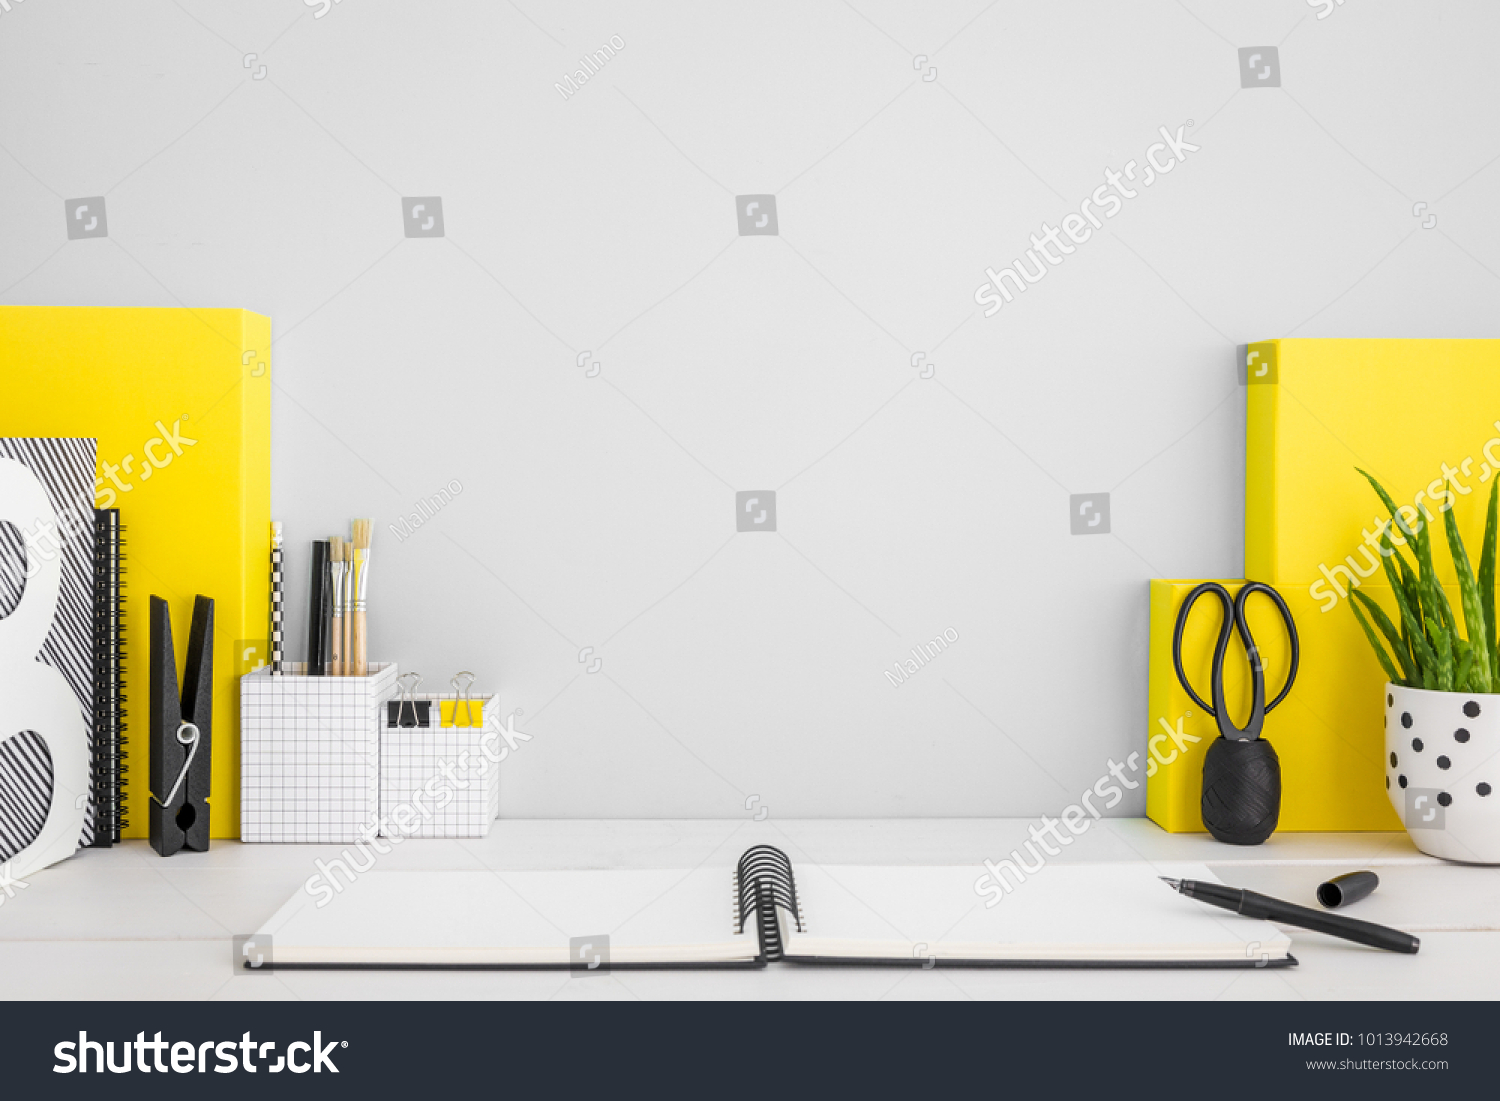 Stupendous Stock Photo Stylish Home Office Desk With Copy Space Books Download Free Architecture Designs Ogrambritishbridgeorg